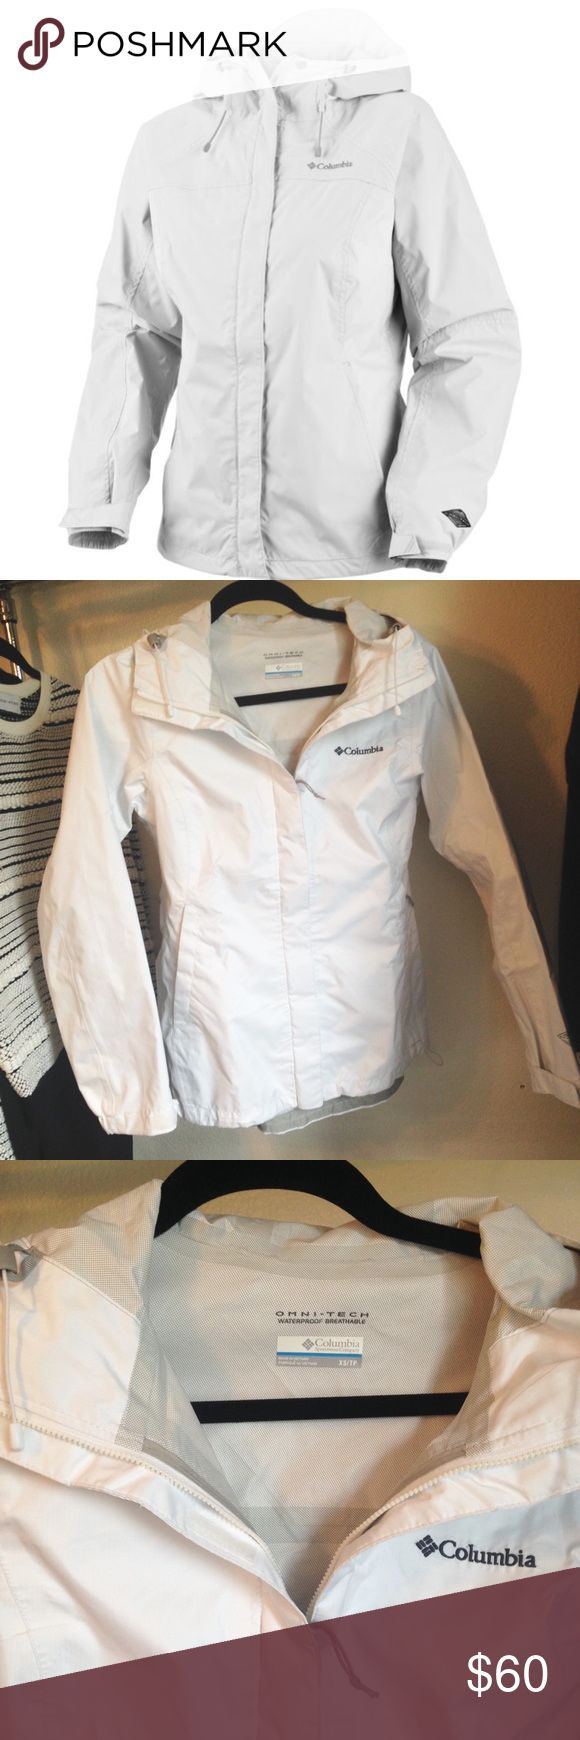 White Columbia Rain Jacket In size XS this lovely rain jacket has been worn once maybe twice? In EUC ♡ Columbia Jackets & Coats